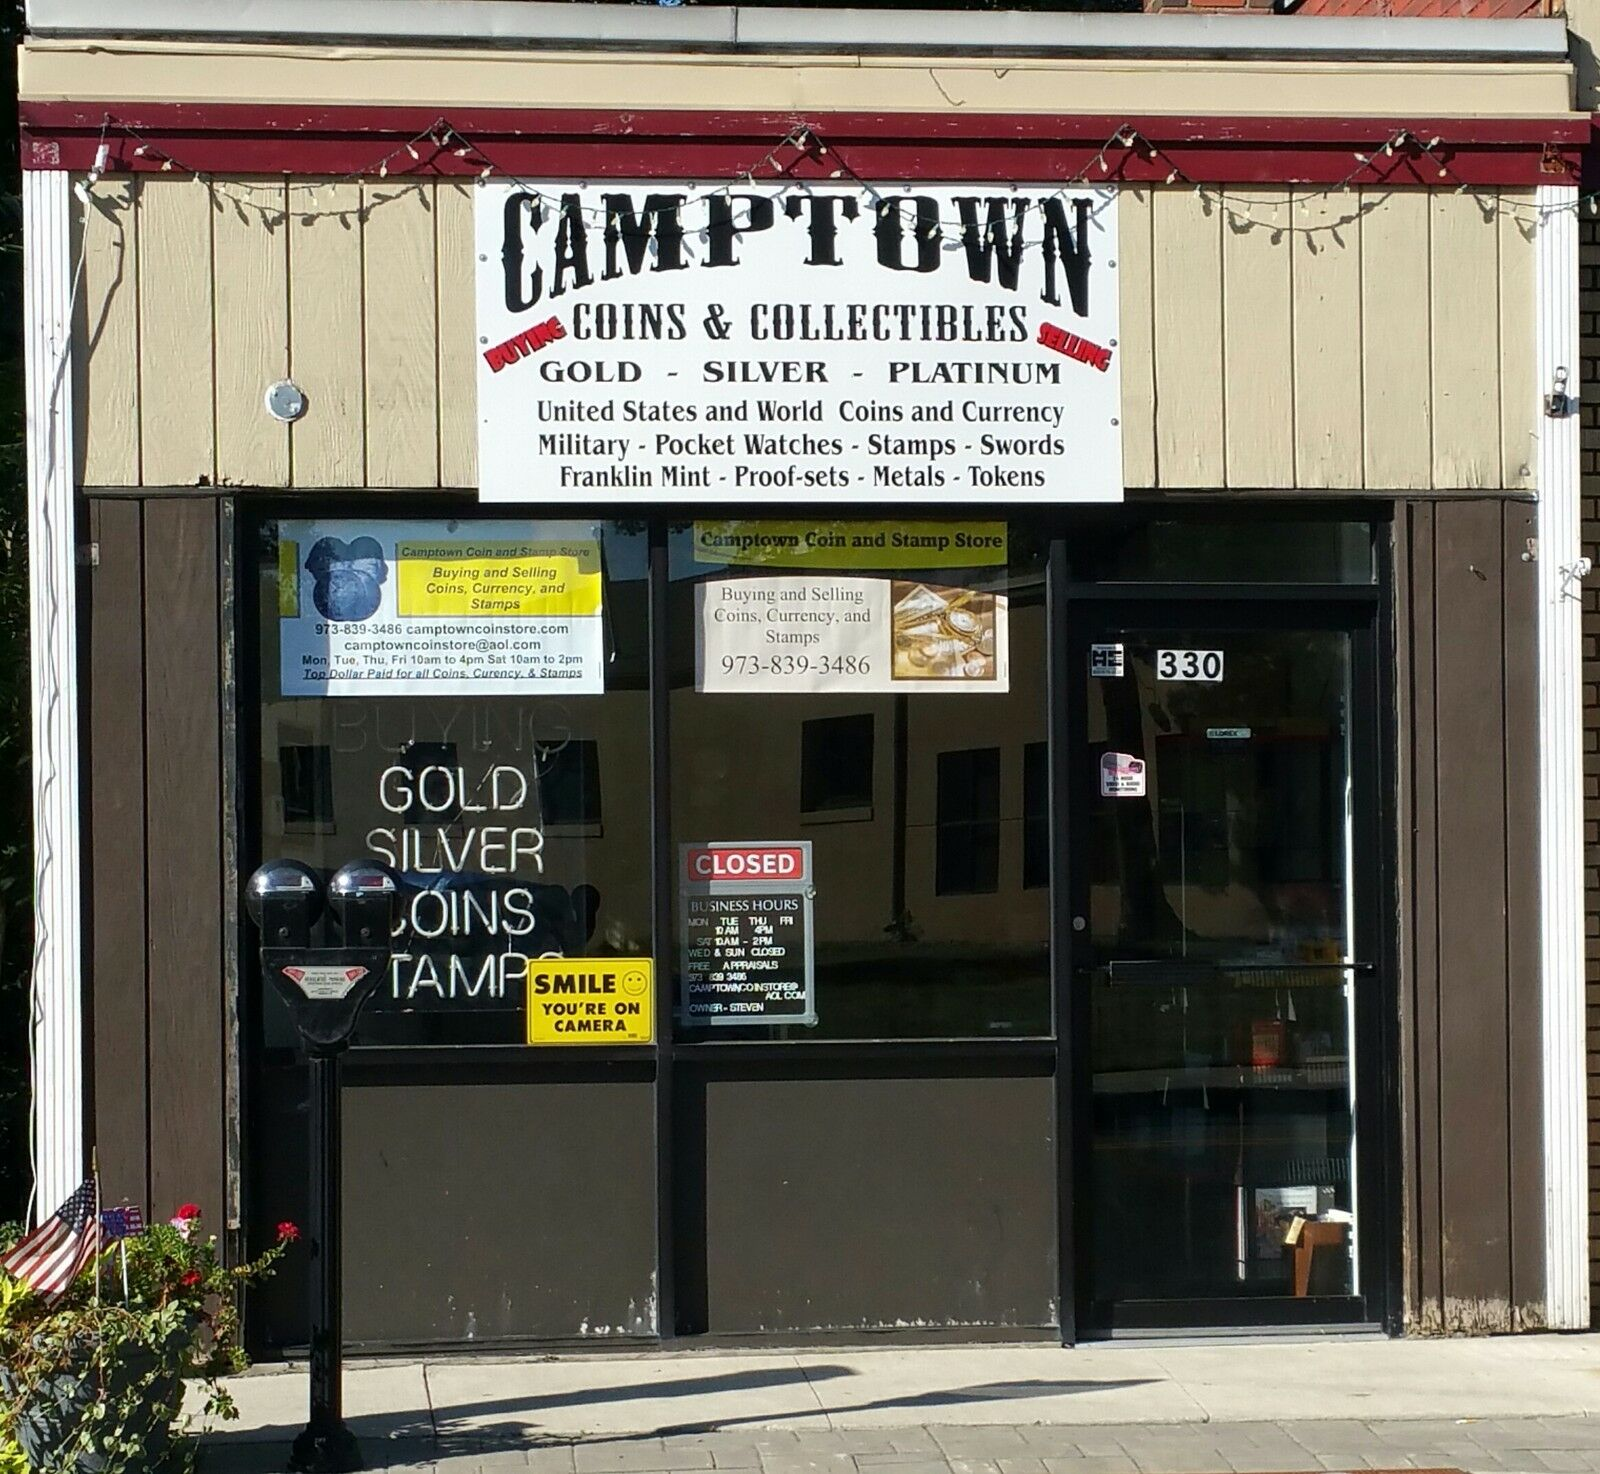 Camptown Coin Store 330 Wanaque Ave